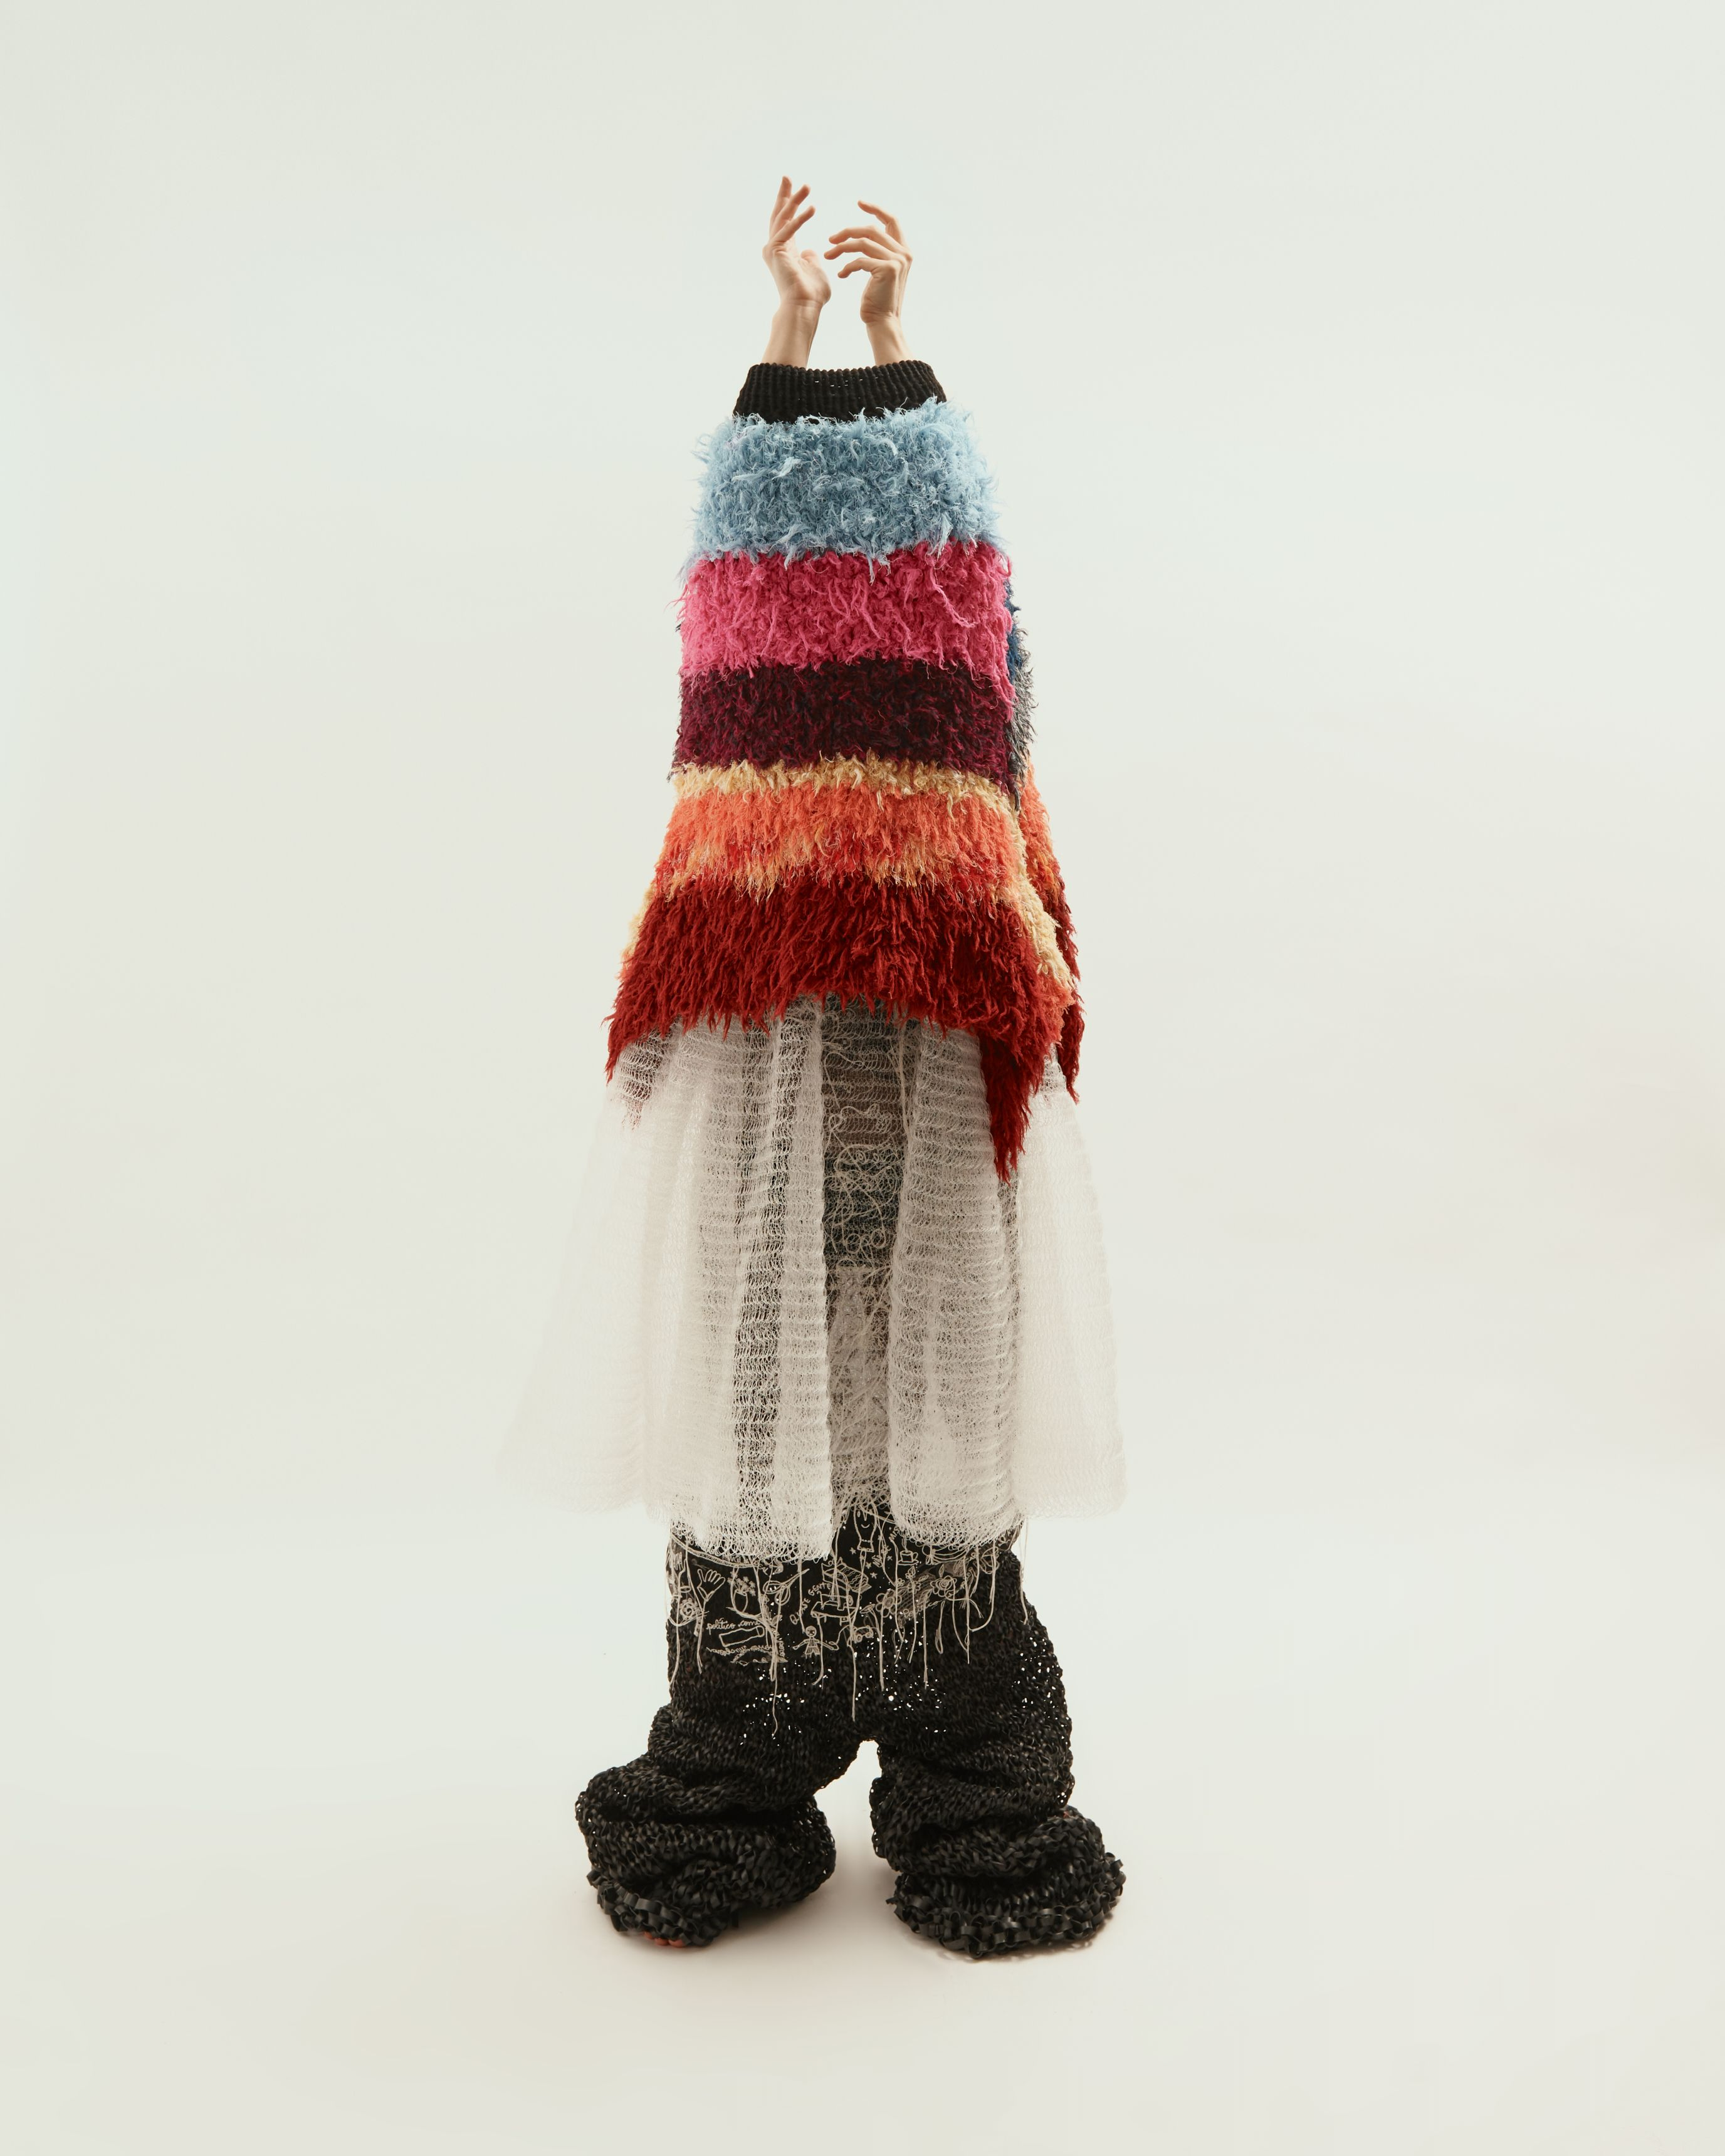 Person standing with knitted clothing on